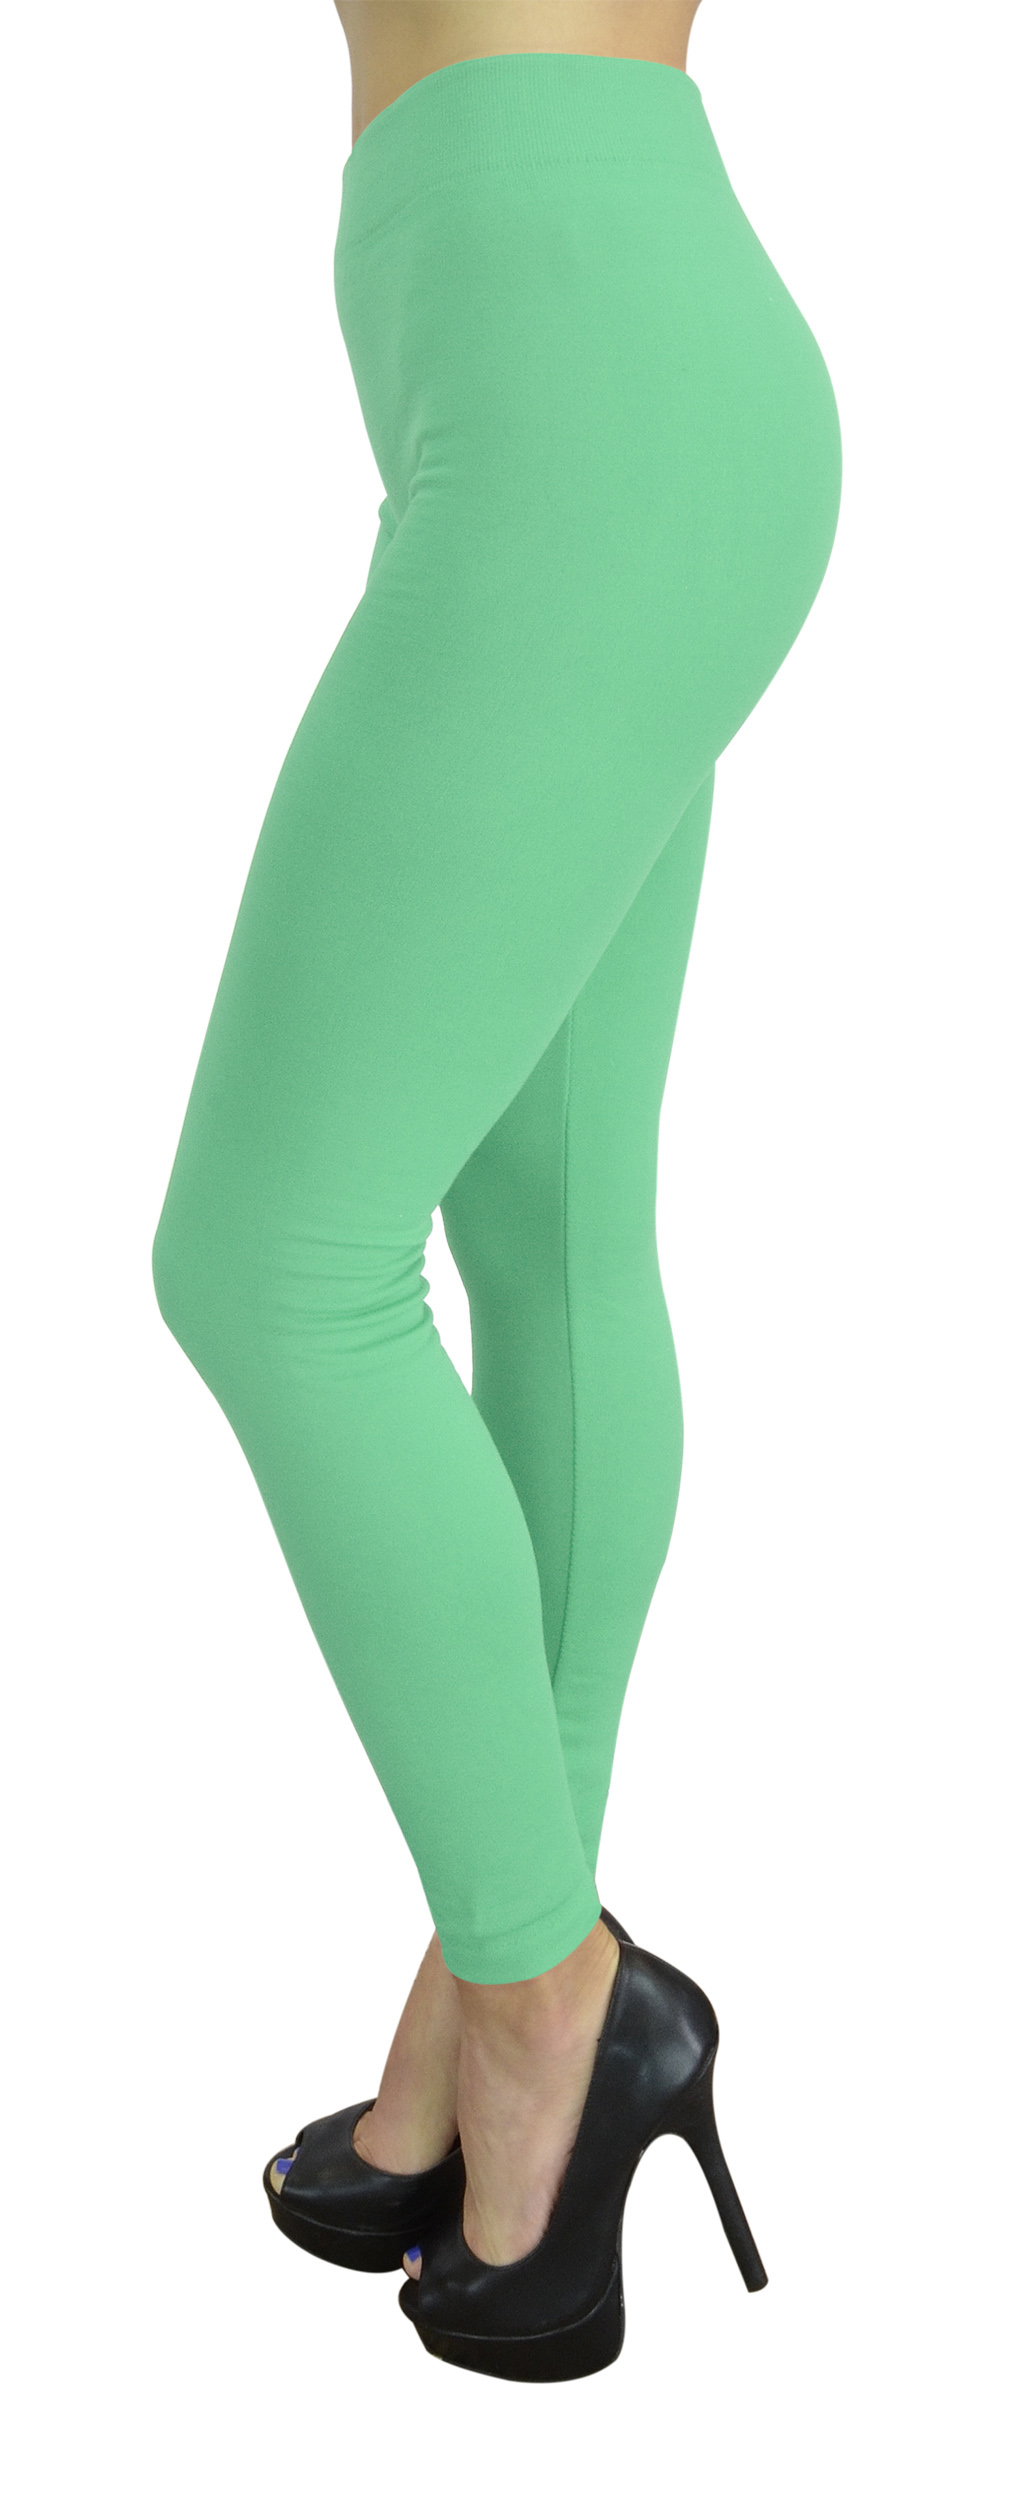 Belle Donne Womens Leggings Workout Yoga Solid Color High Waist Mint